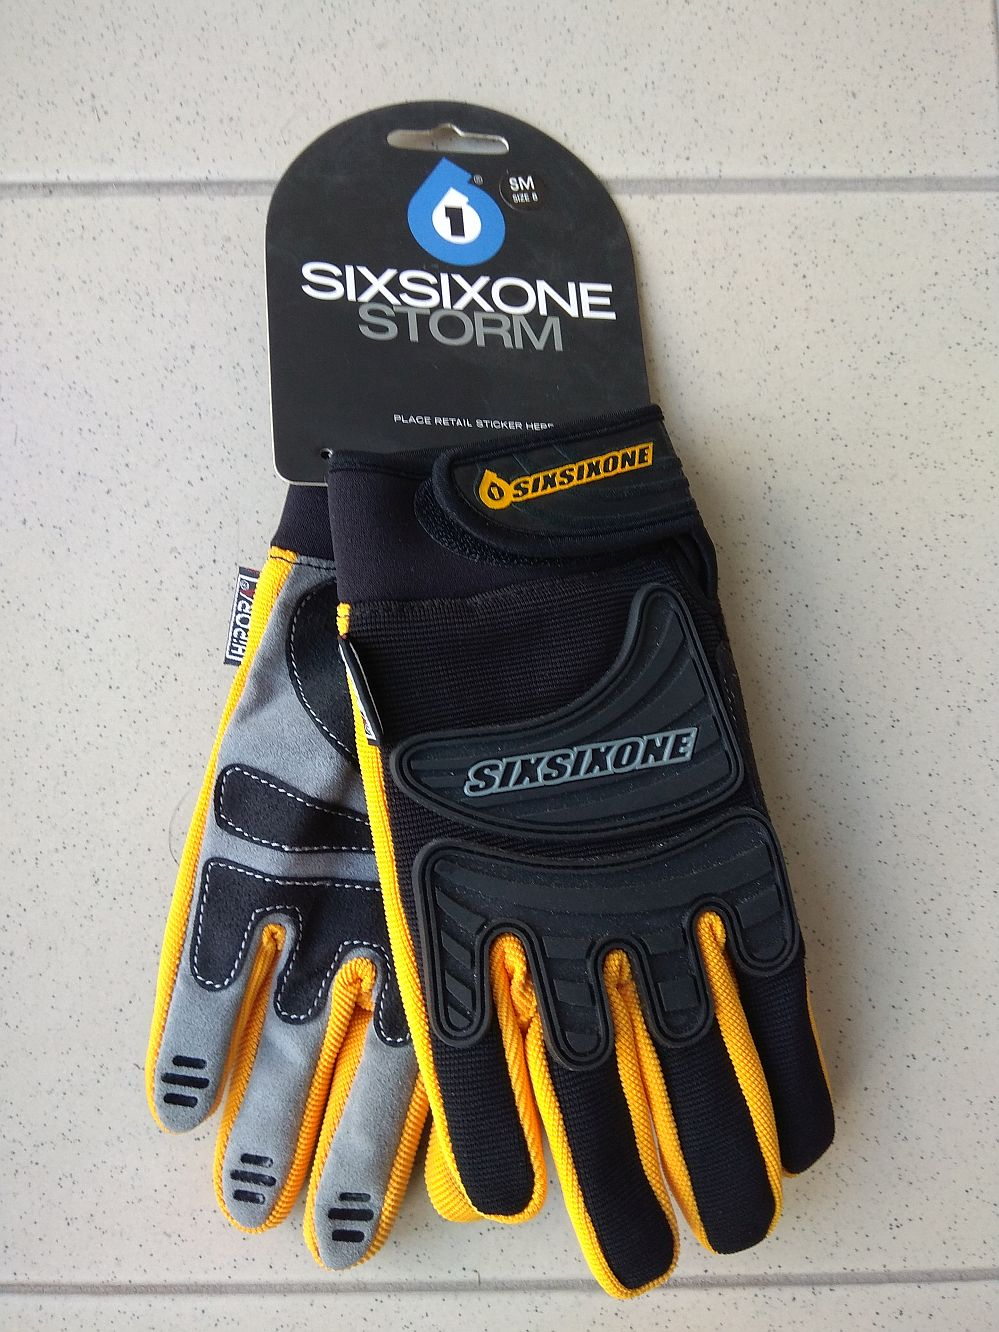 661 Storm gloves SixSixOne Black / Yellow size S